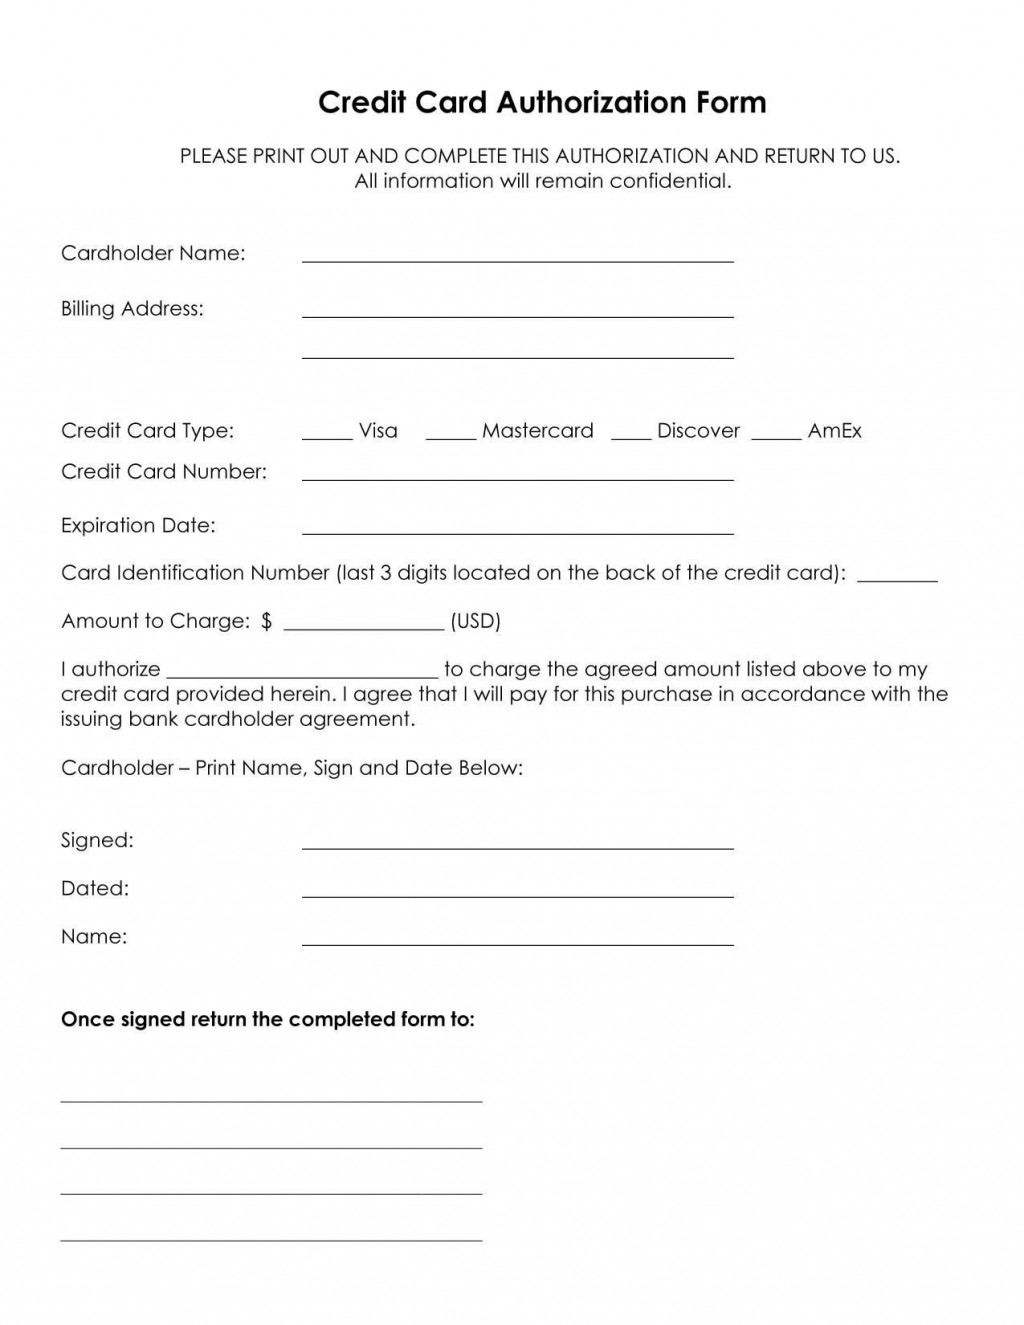 002 Astounding One Time Credit Card Payment Authorization Form Template Photo Large